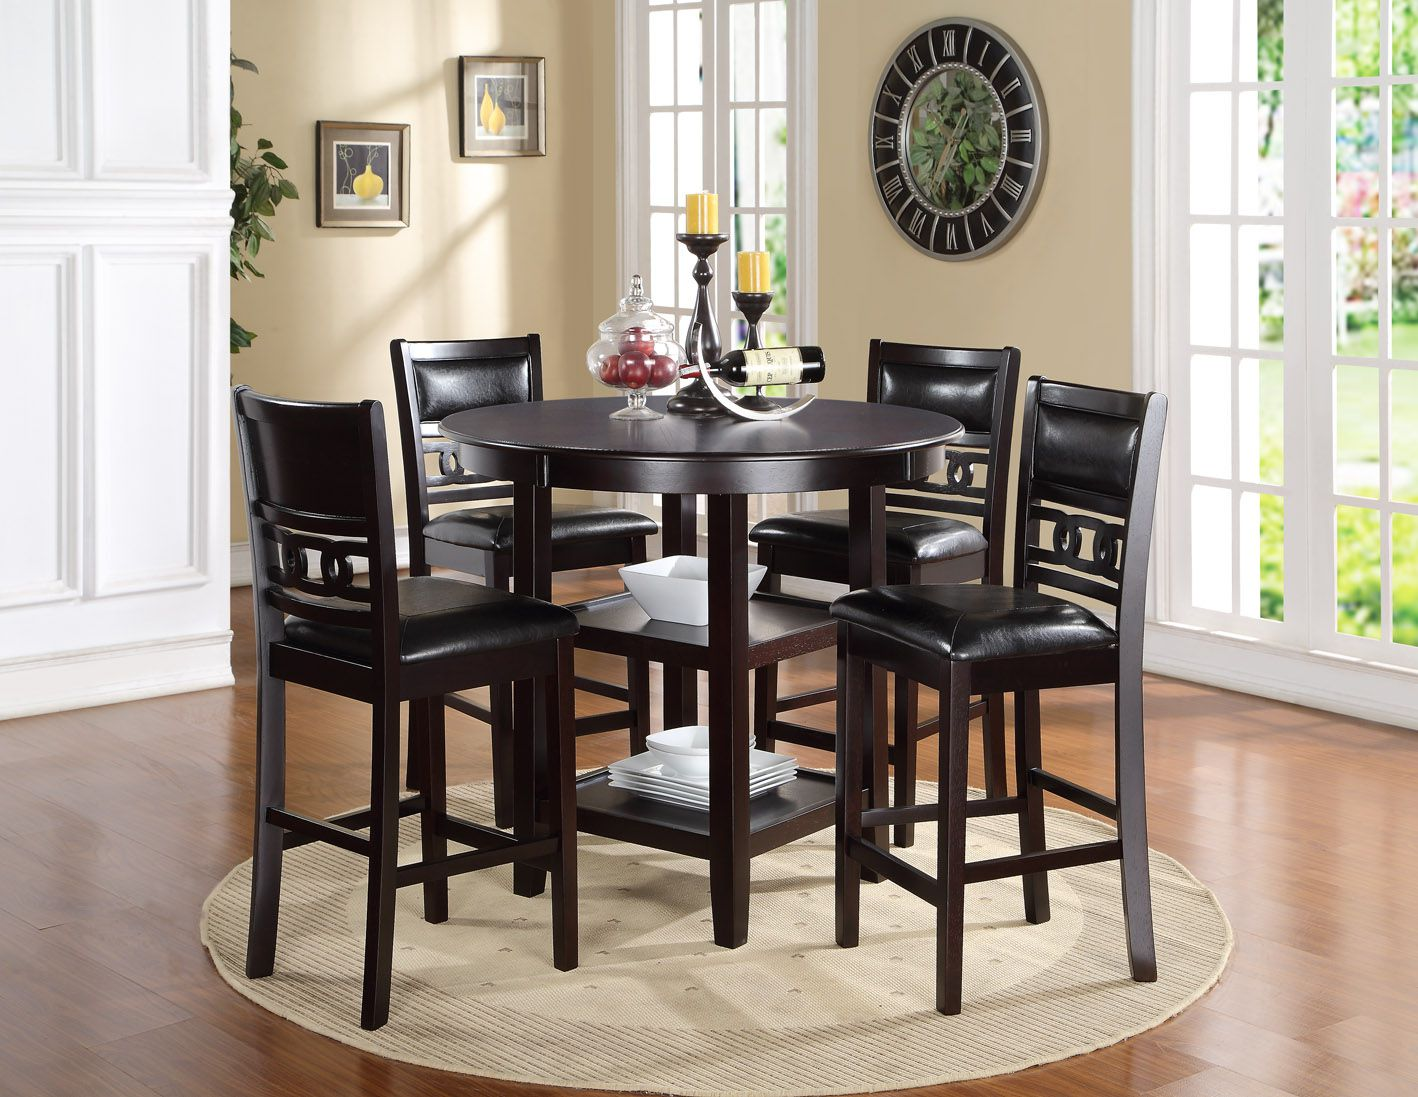 Table and Chairs - Corporate Rentals